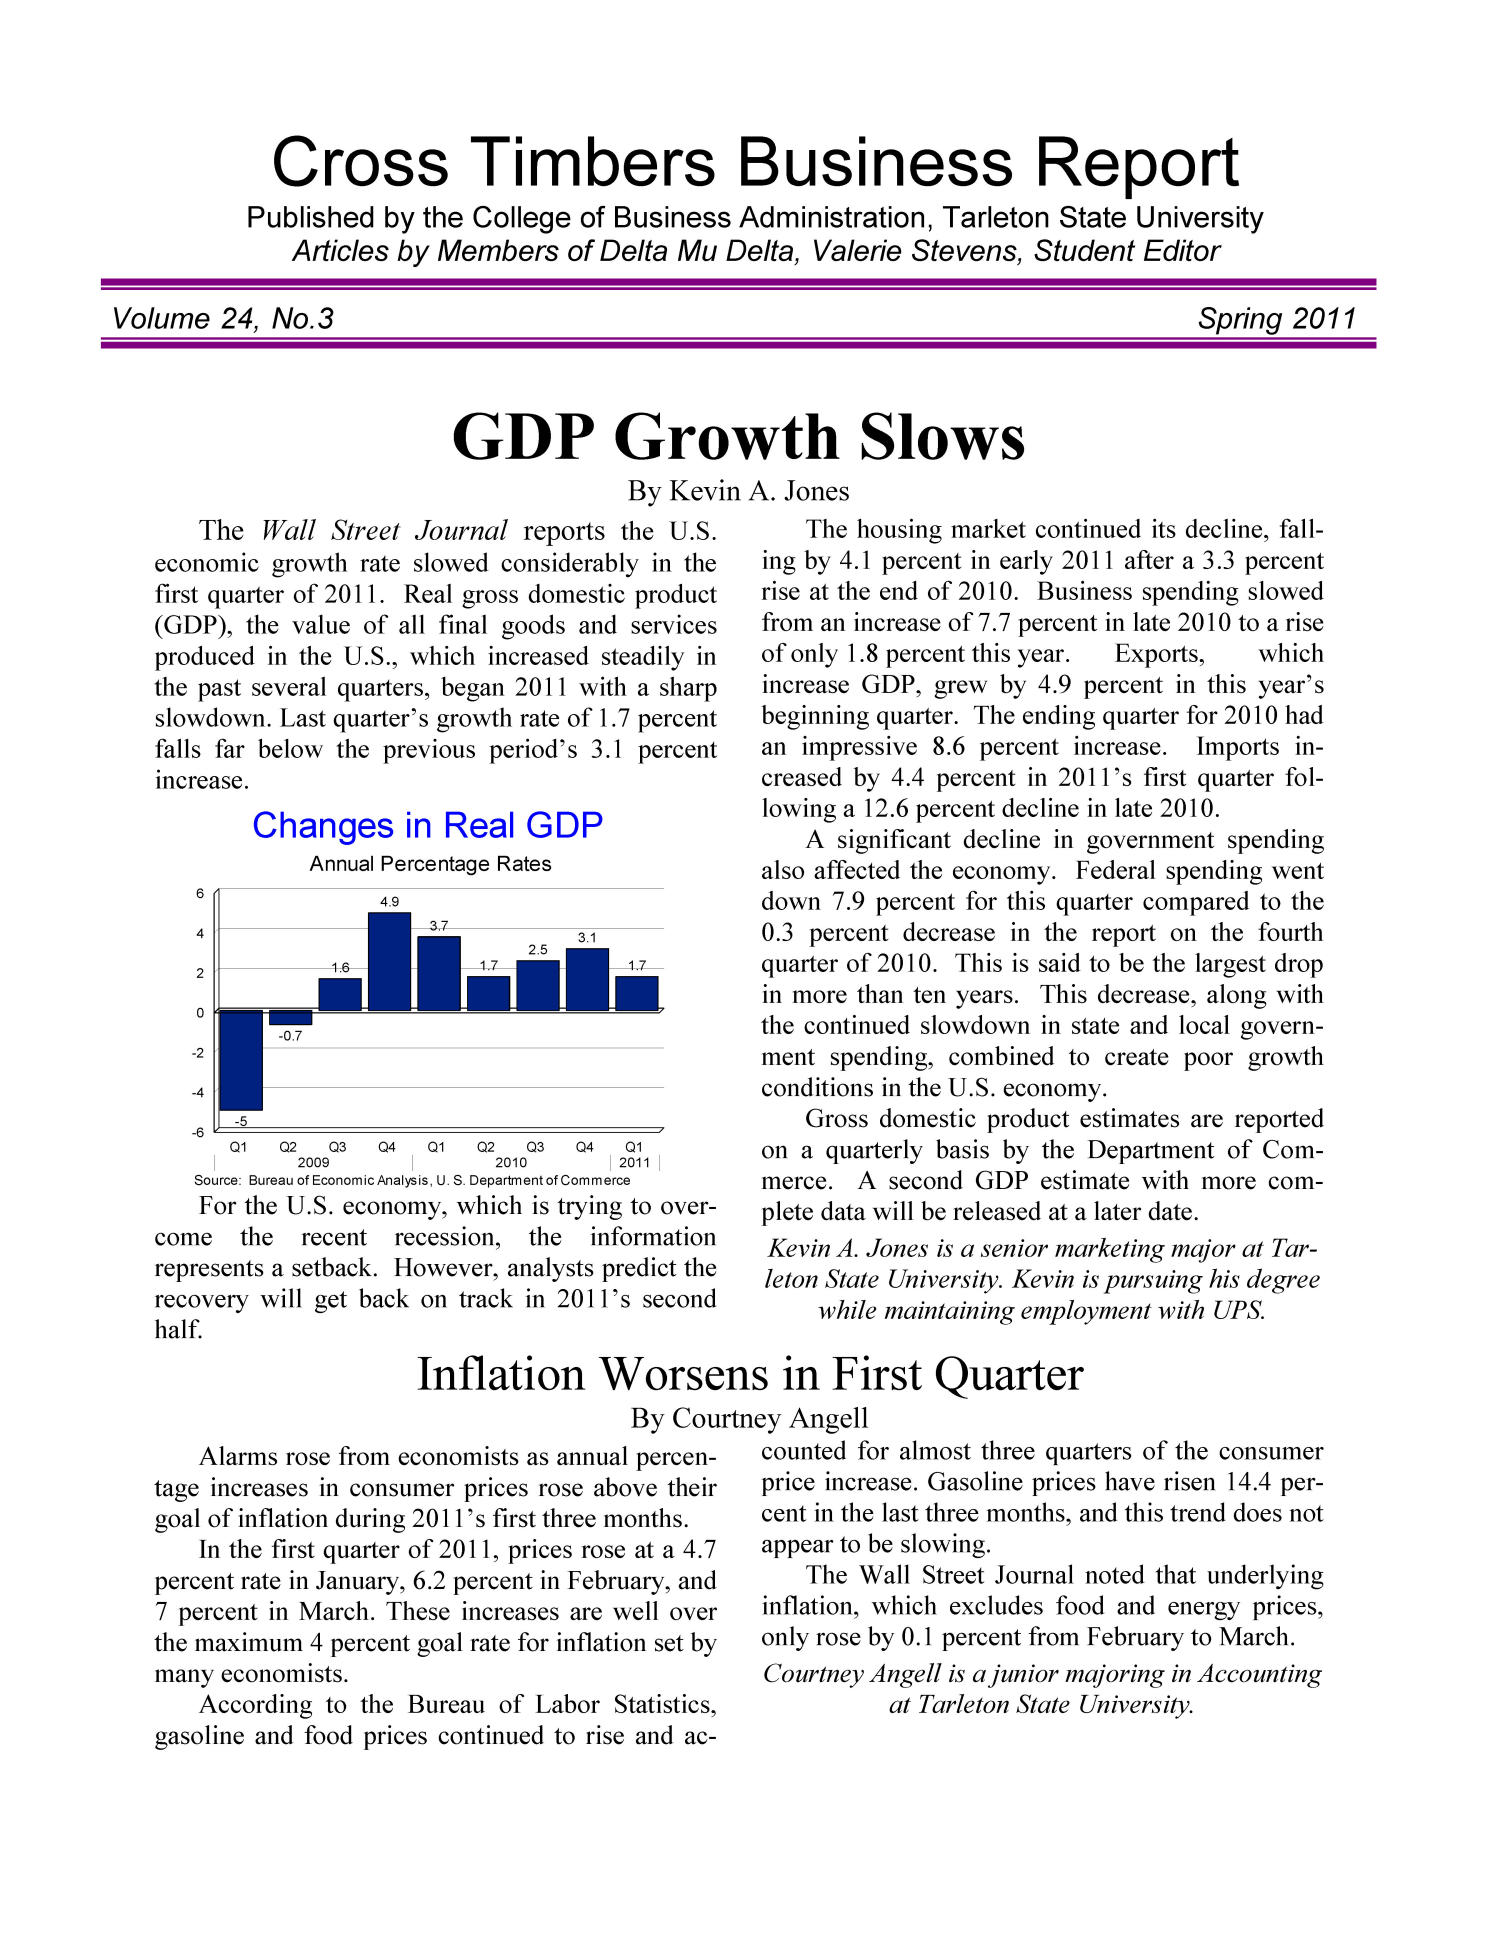 Cross Timbers Business Report, Volume 24, Number 3, Spring 2011                                                                                                      1